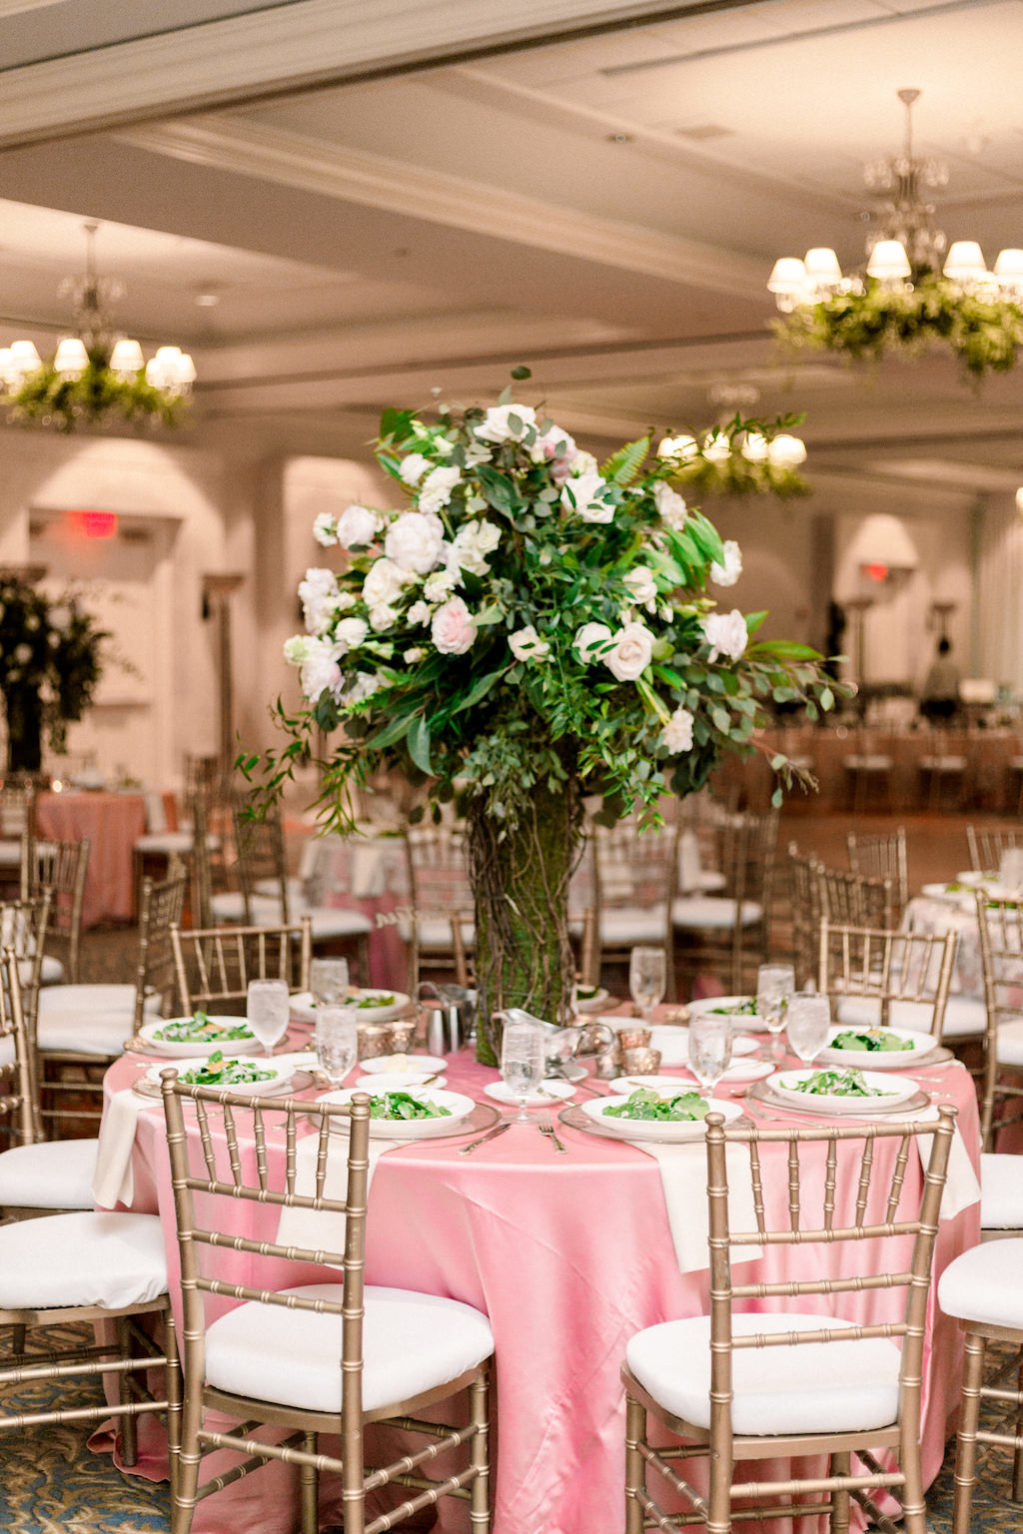 Florida Ballroom Wedding Reception Decor, Round Table with Pink Tablecloth, Gold Chiavari Chairs, Tall Greenery, Ivory and Blush Pink Floral Centerpiece | Wedding Venue Tampa Bay Marriott Waterside | Wedding Rental Company A Chair Affair | Over the Top Rental Linens